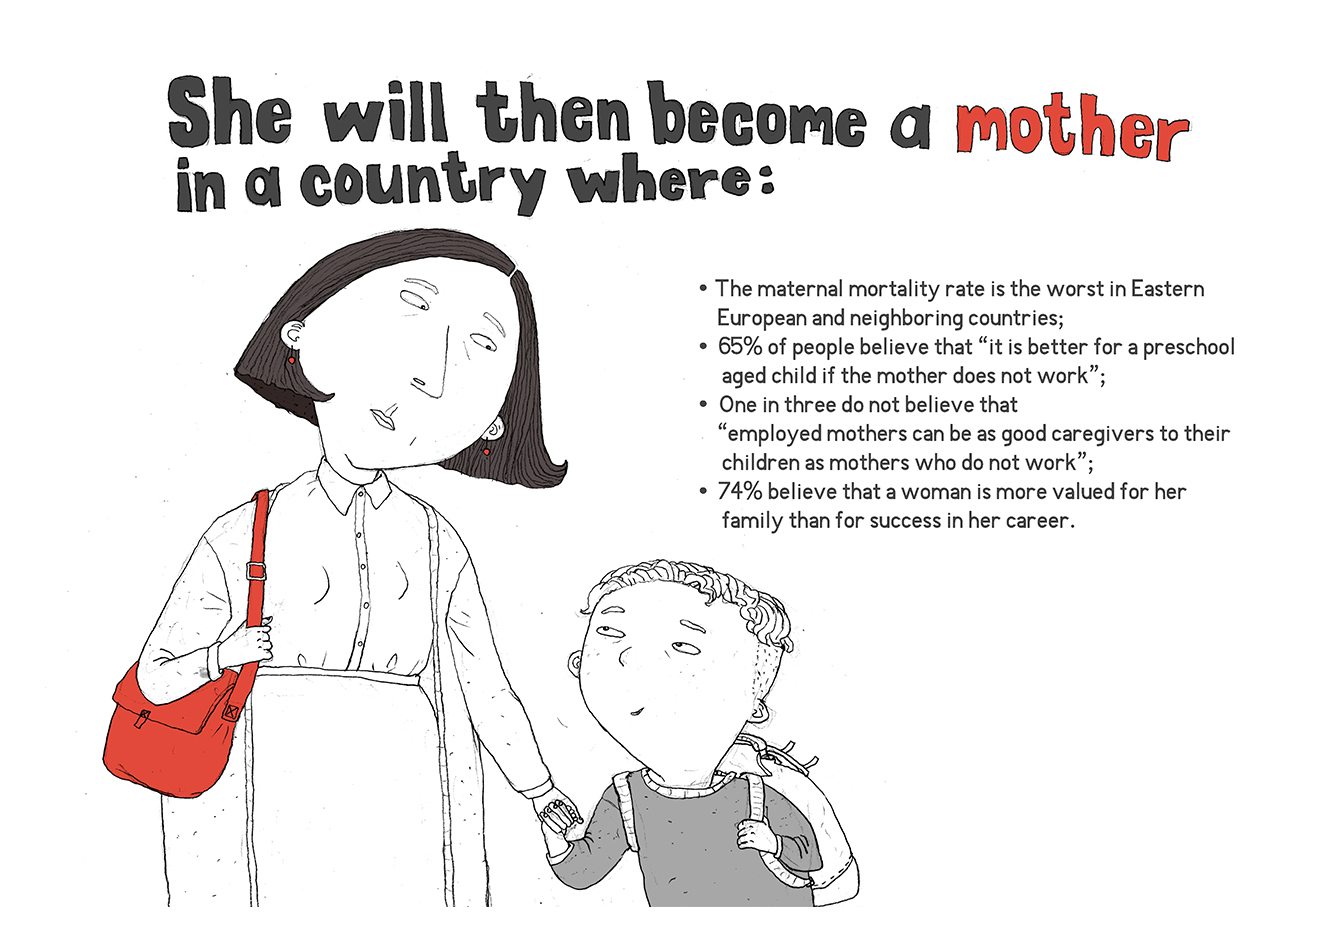 5) Why Georgian Women Need Rights Instead of Flowers 1340x785px 300dpi